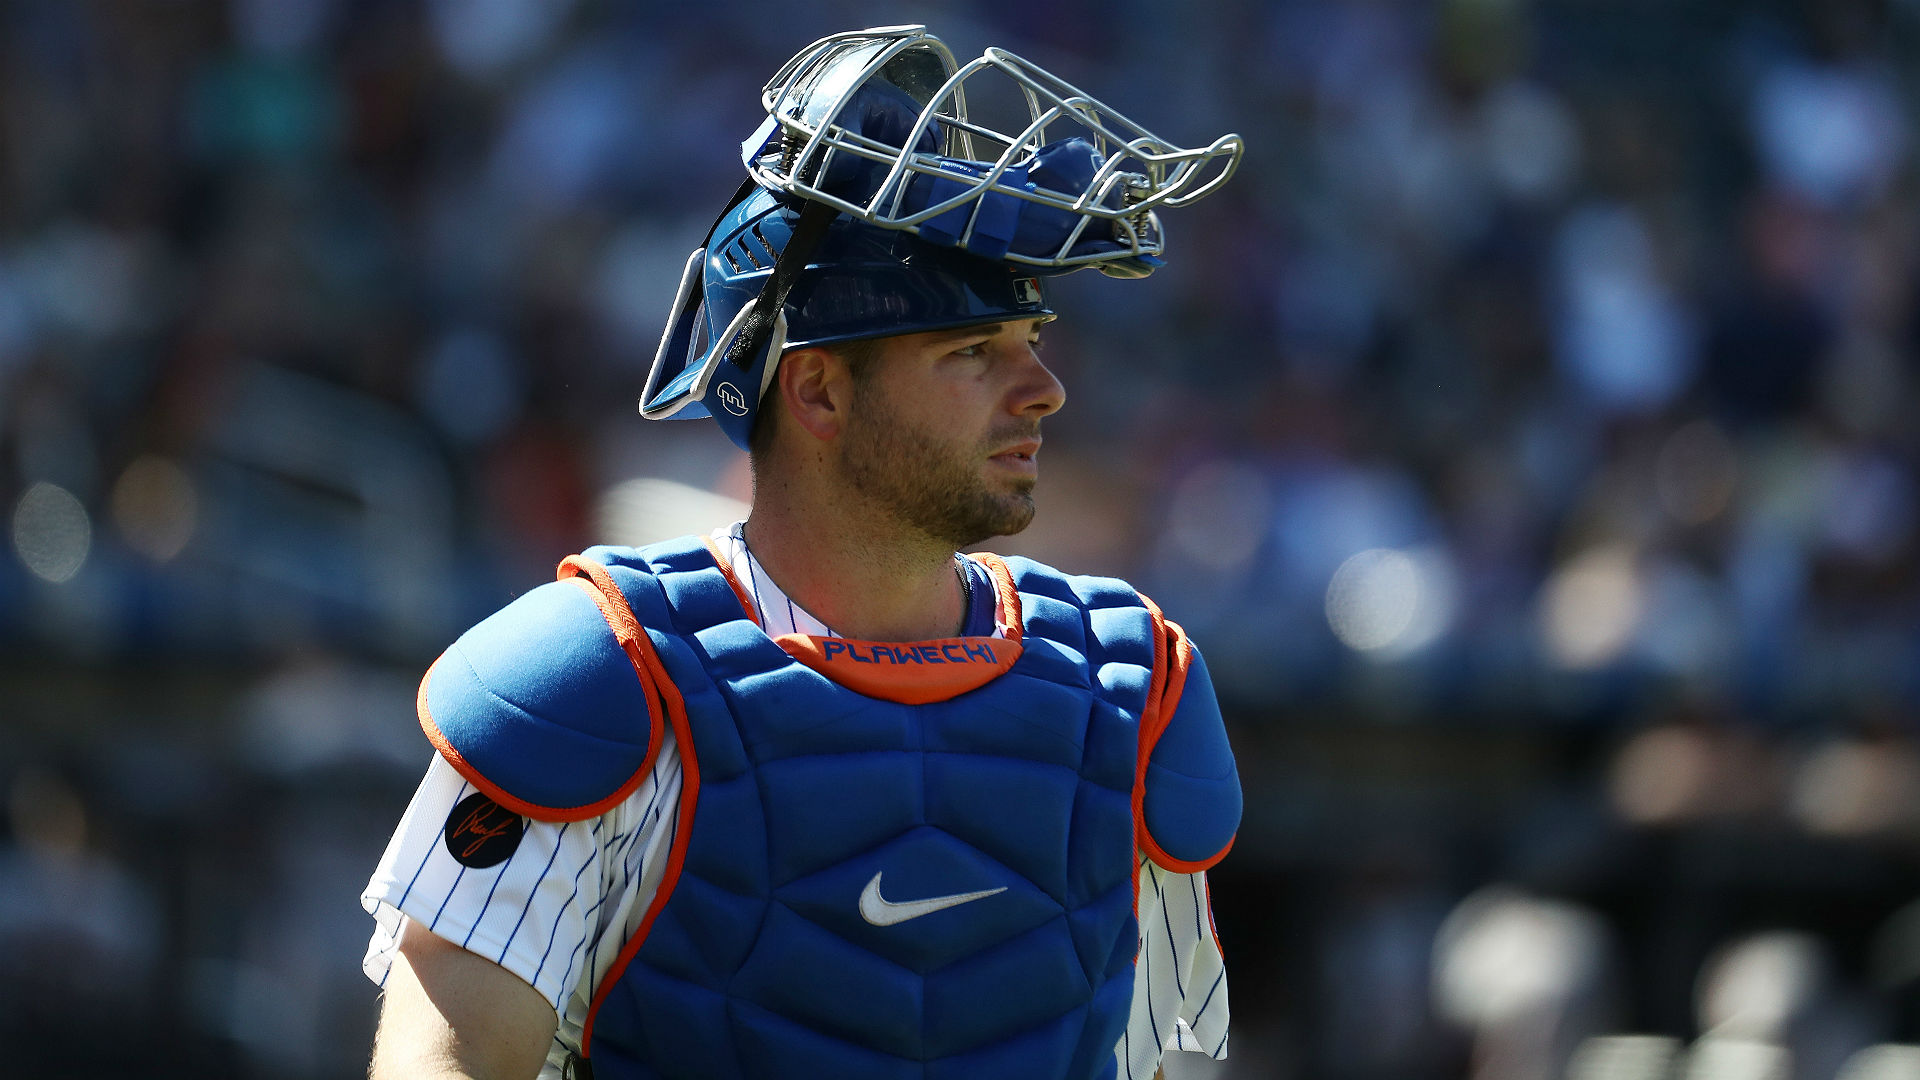 Cleveland Indians acquire catcher Kevin Plawecki in trade with New York Mets